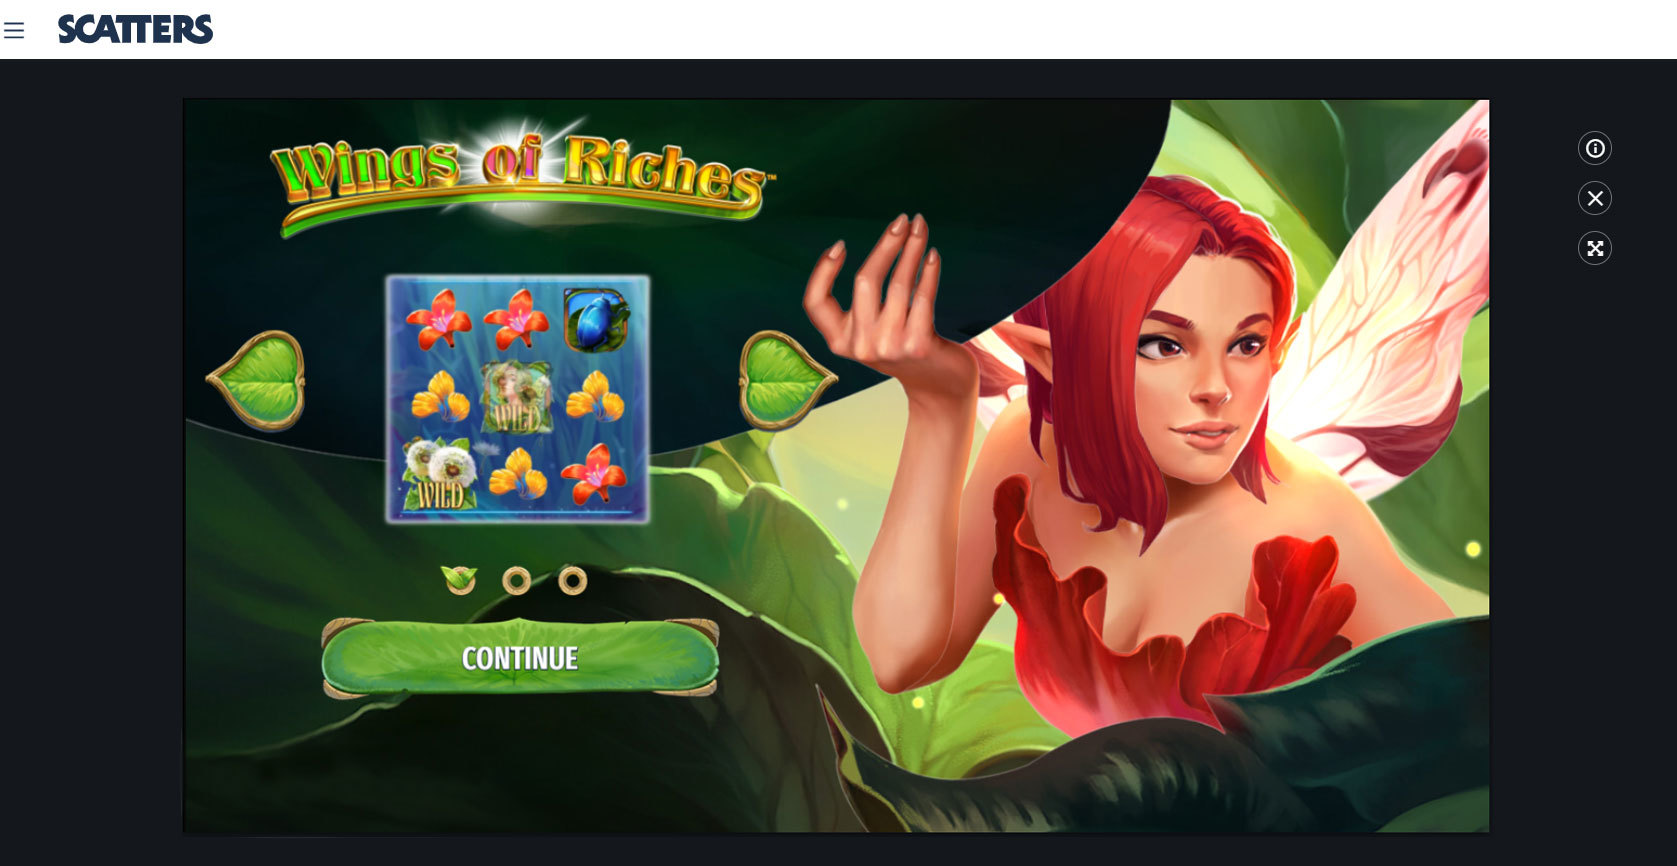 Wings of Riches Online Slot Games at Scatters Casino